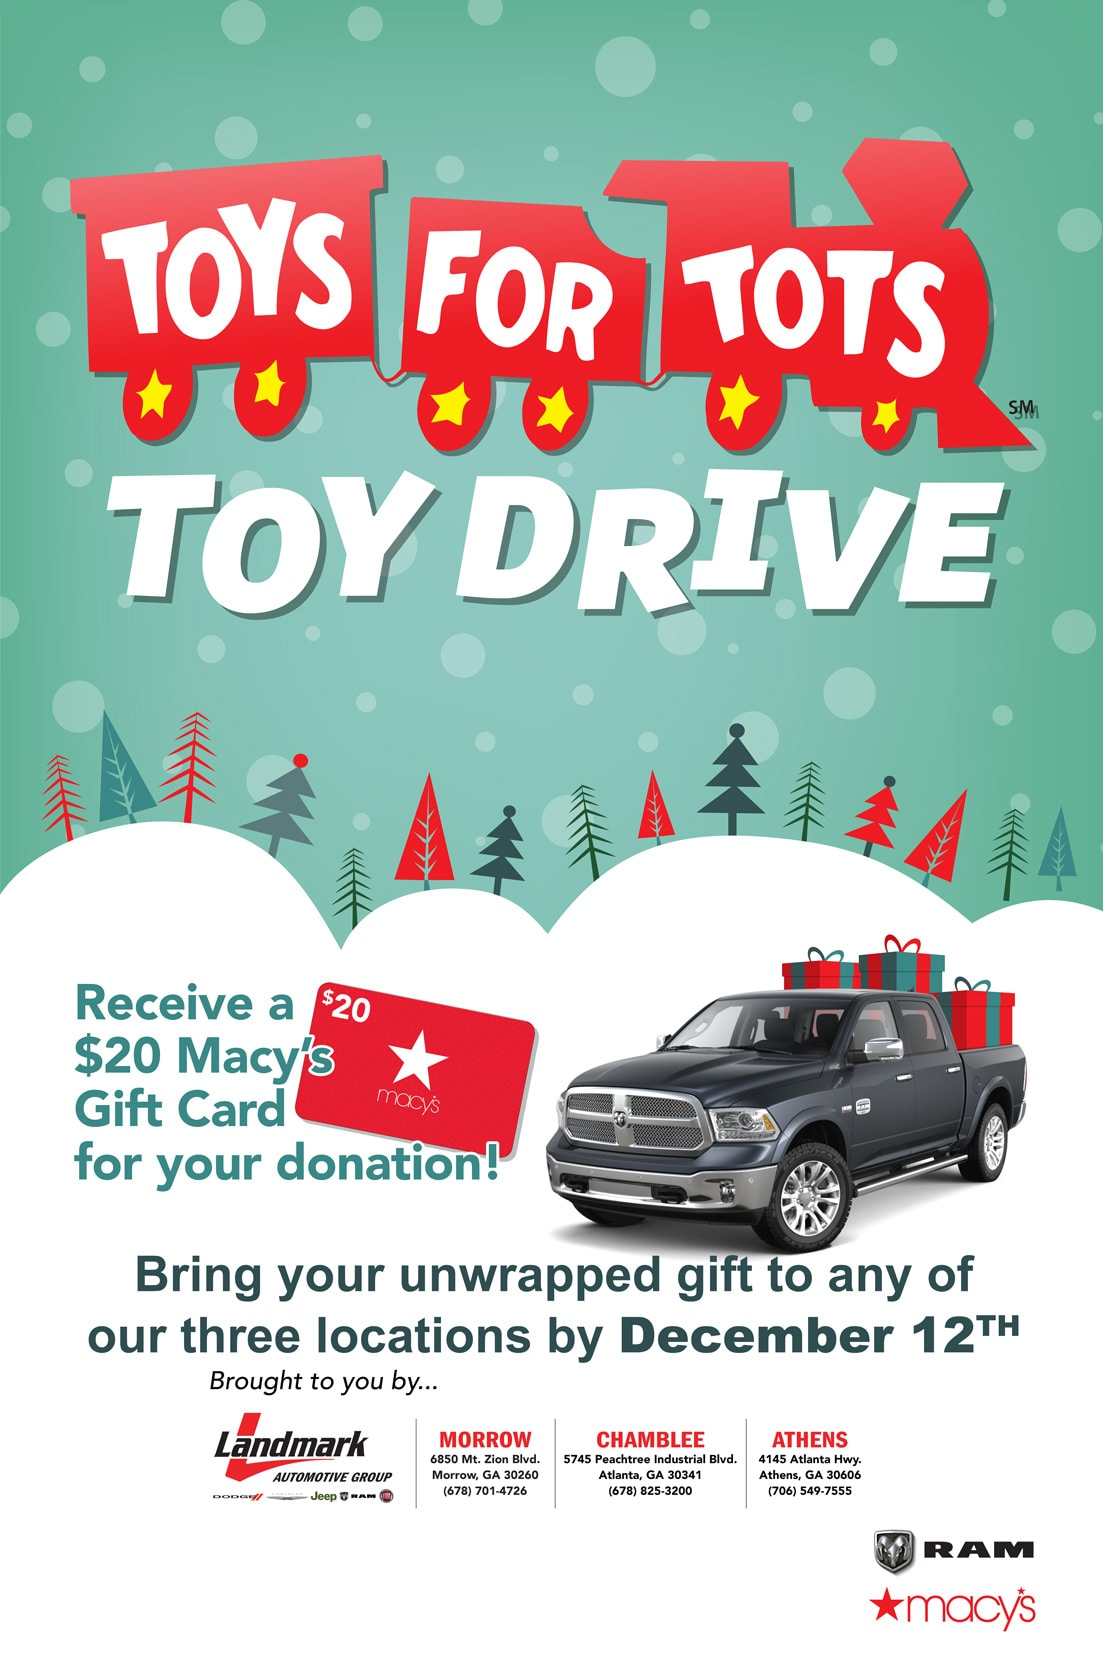 Toys For Tots 2017 Poster : Toys for tots at landmark athens dodge chrysler